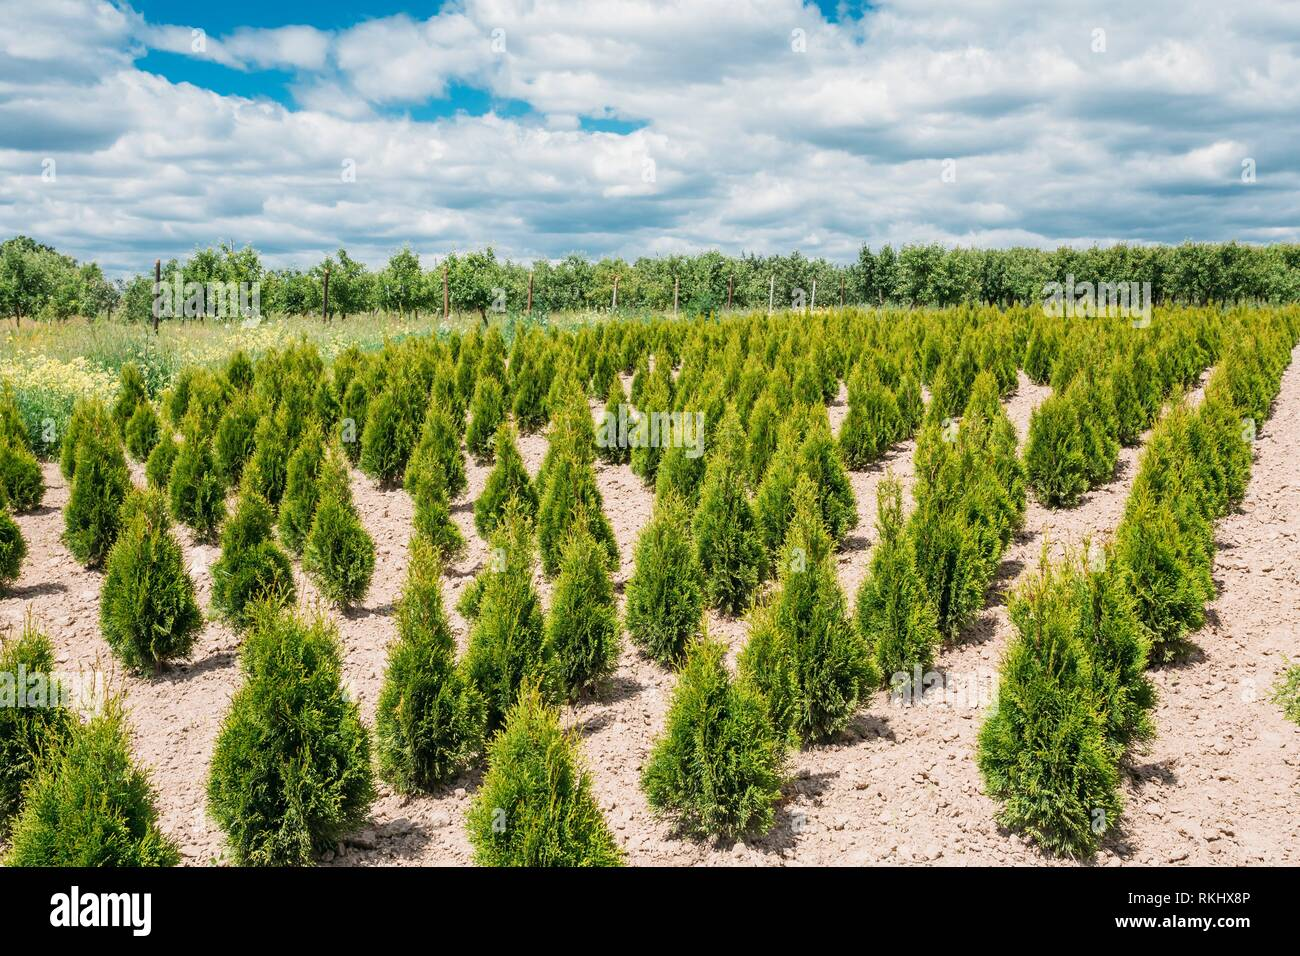 Gomel, Belarus. The Summer Spring Plantation Of Thuja Or Thuya Seedlings, Planted Rows On Sandy Soil. Coniferous Small Bushes. The Forest Background. - Stock Image